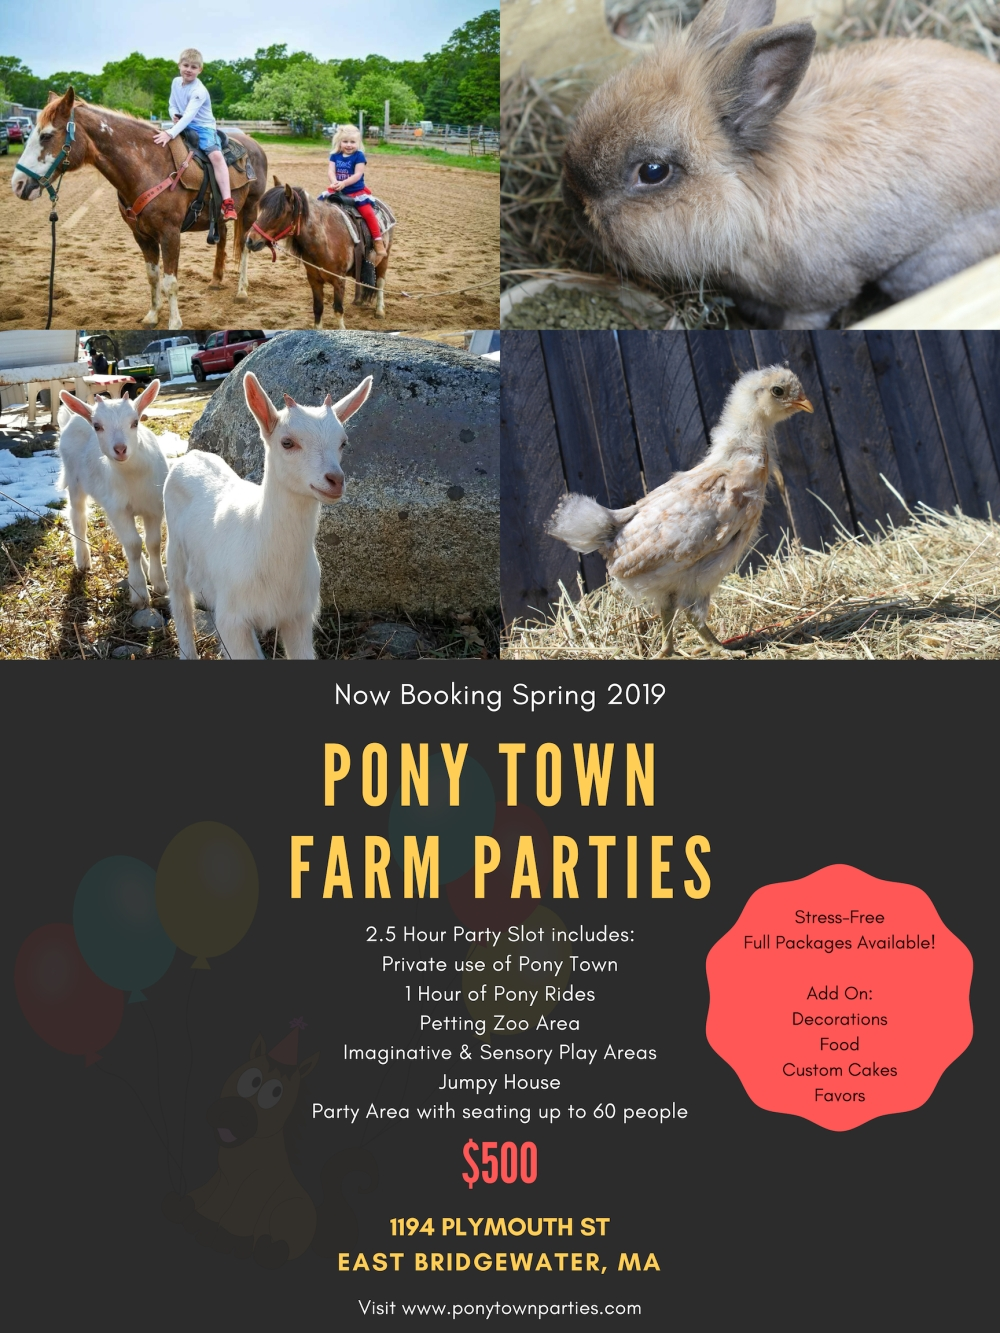 Pony Town Farm Parties